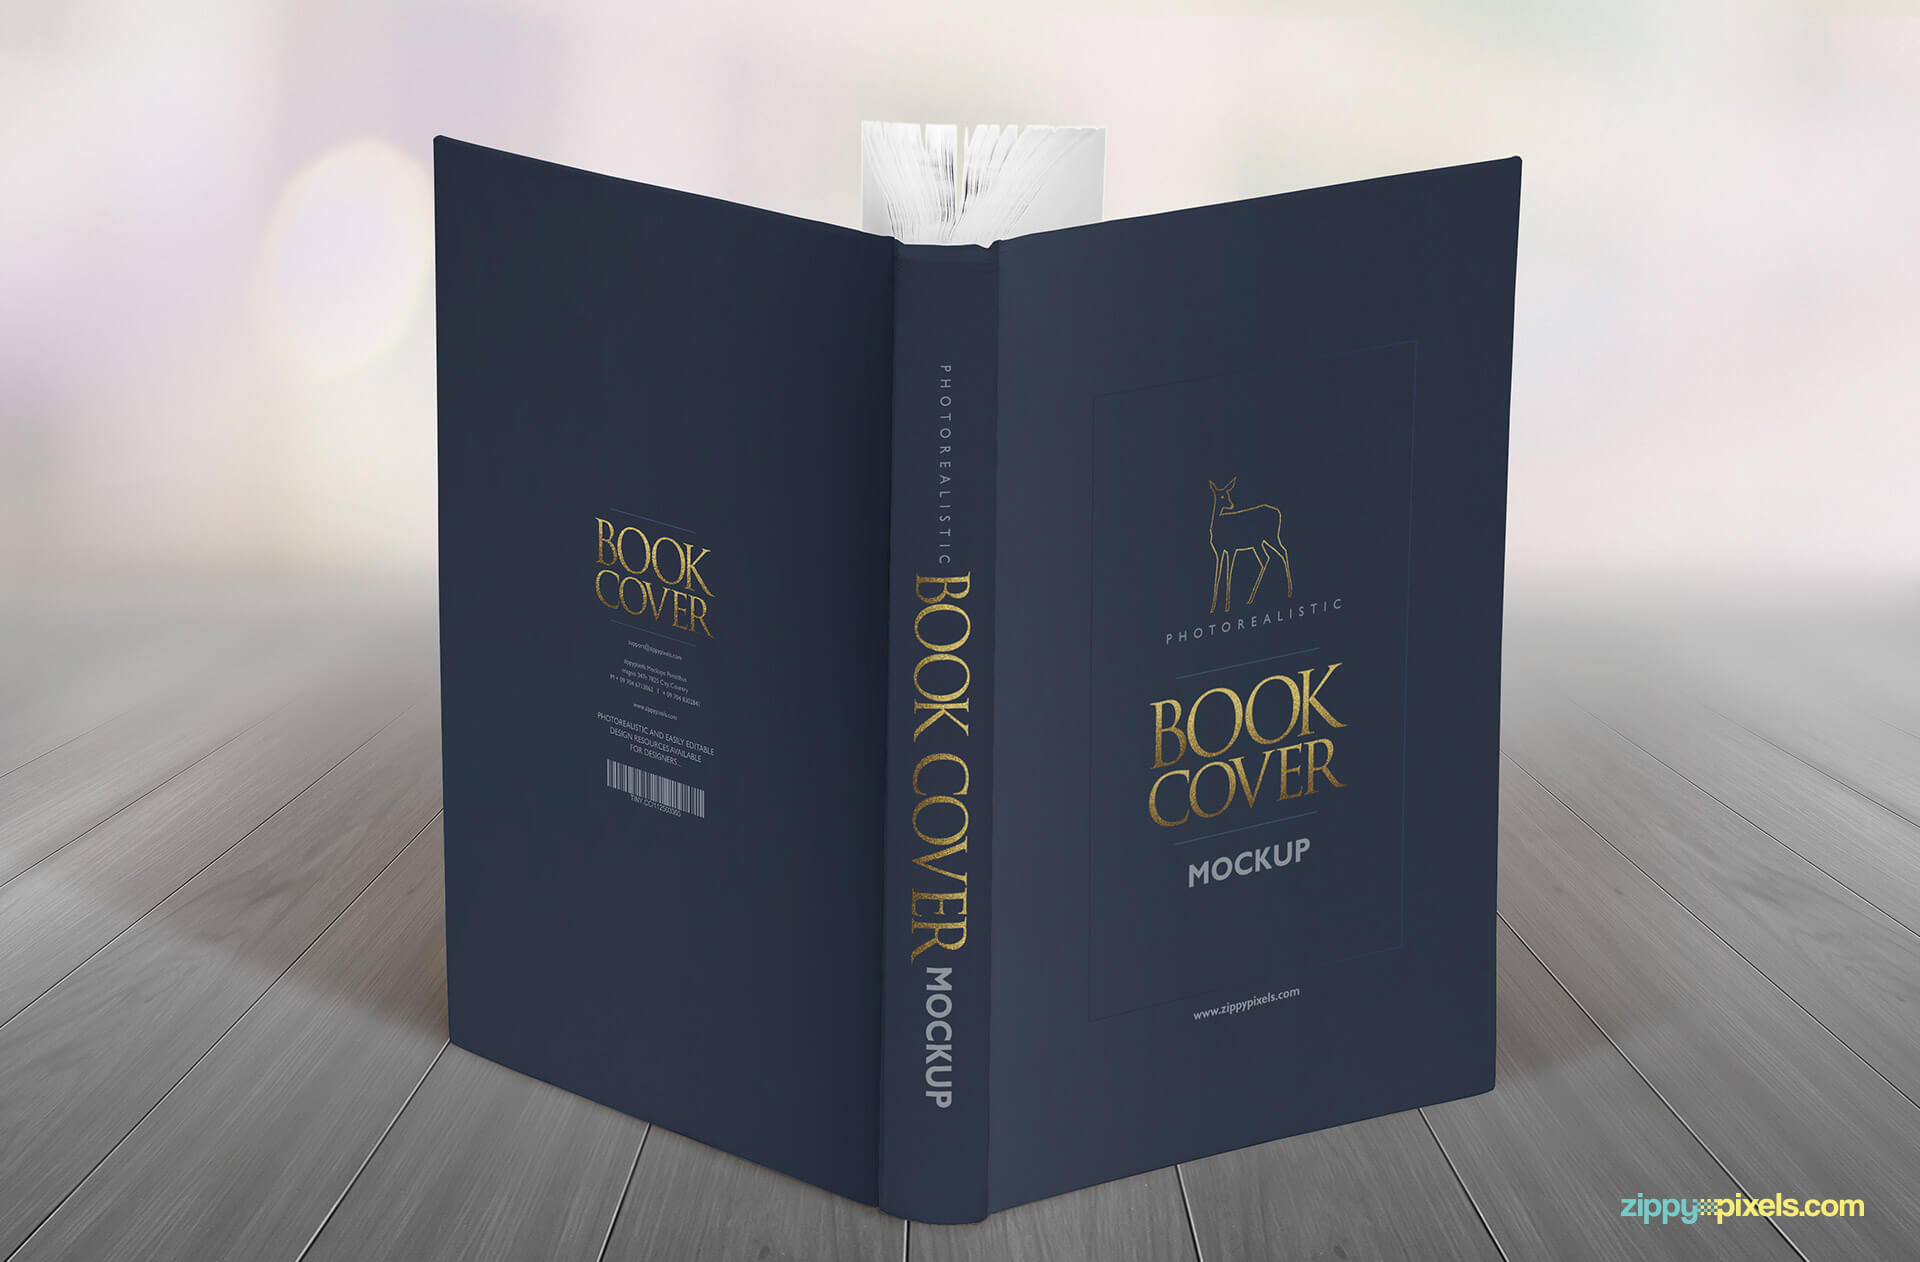 Hardcvoer book mockups for showcasing your full dustcover design